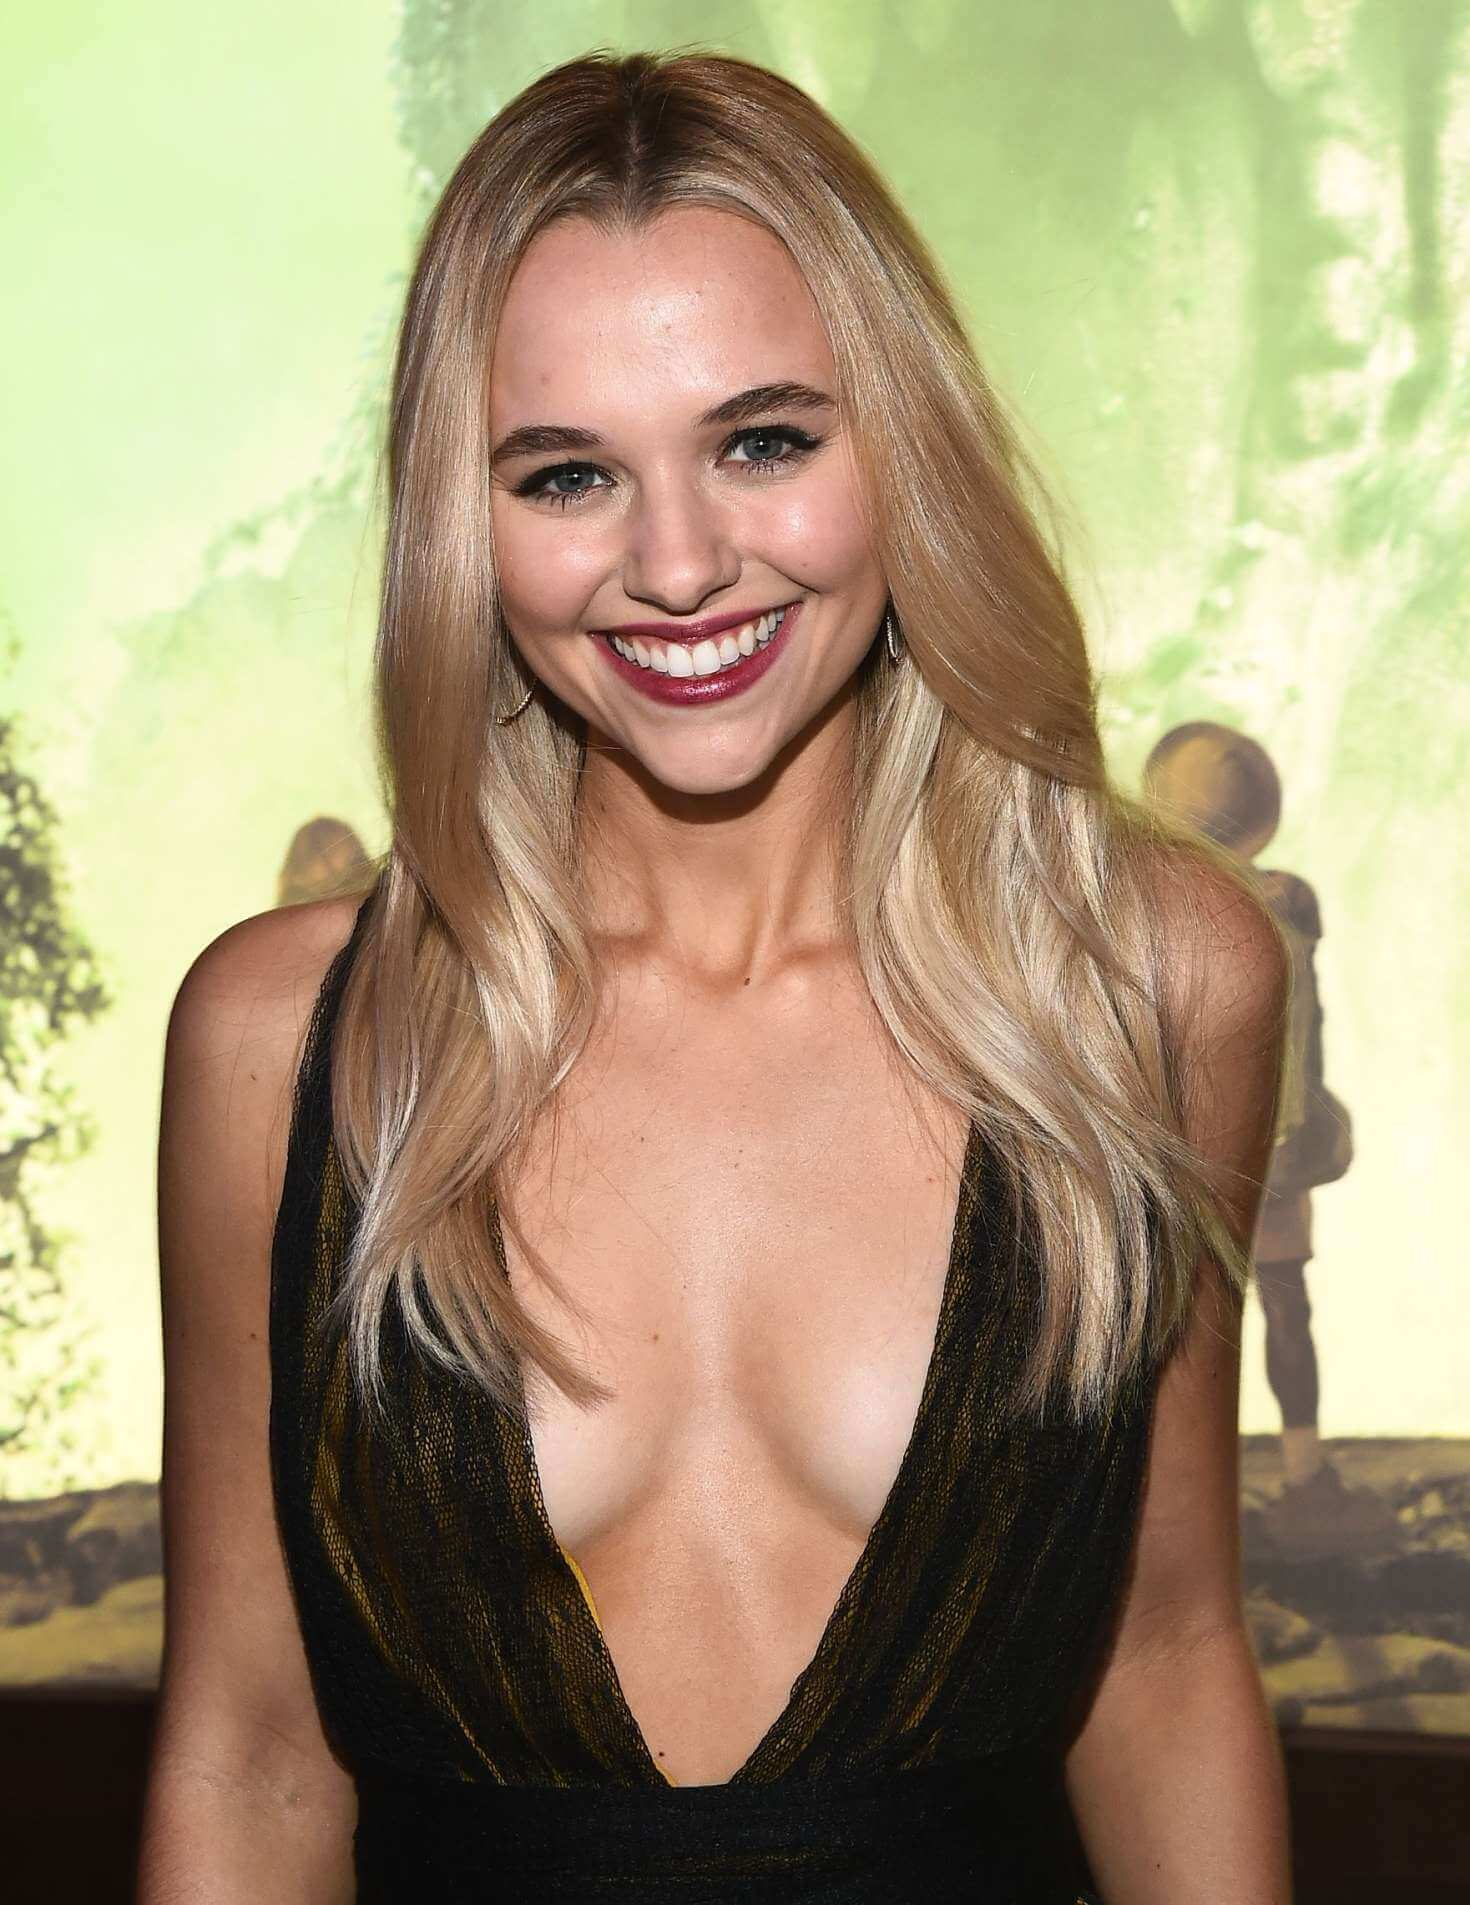 61 Hottest Madison Iseman Boobs Pictures You Just Want To Nestle